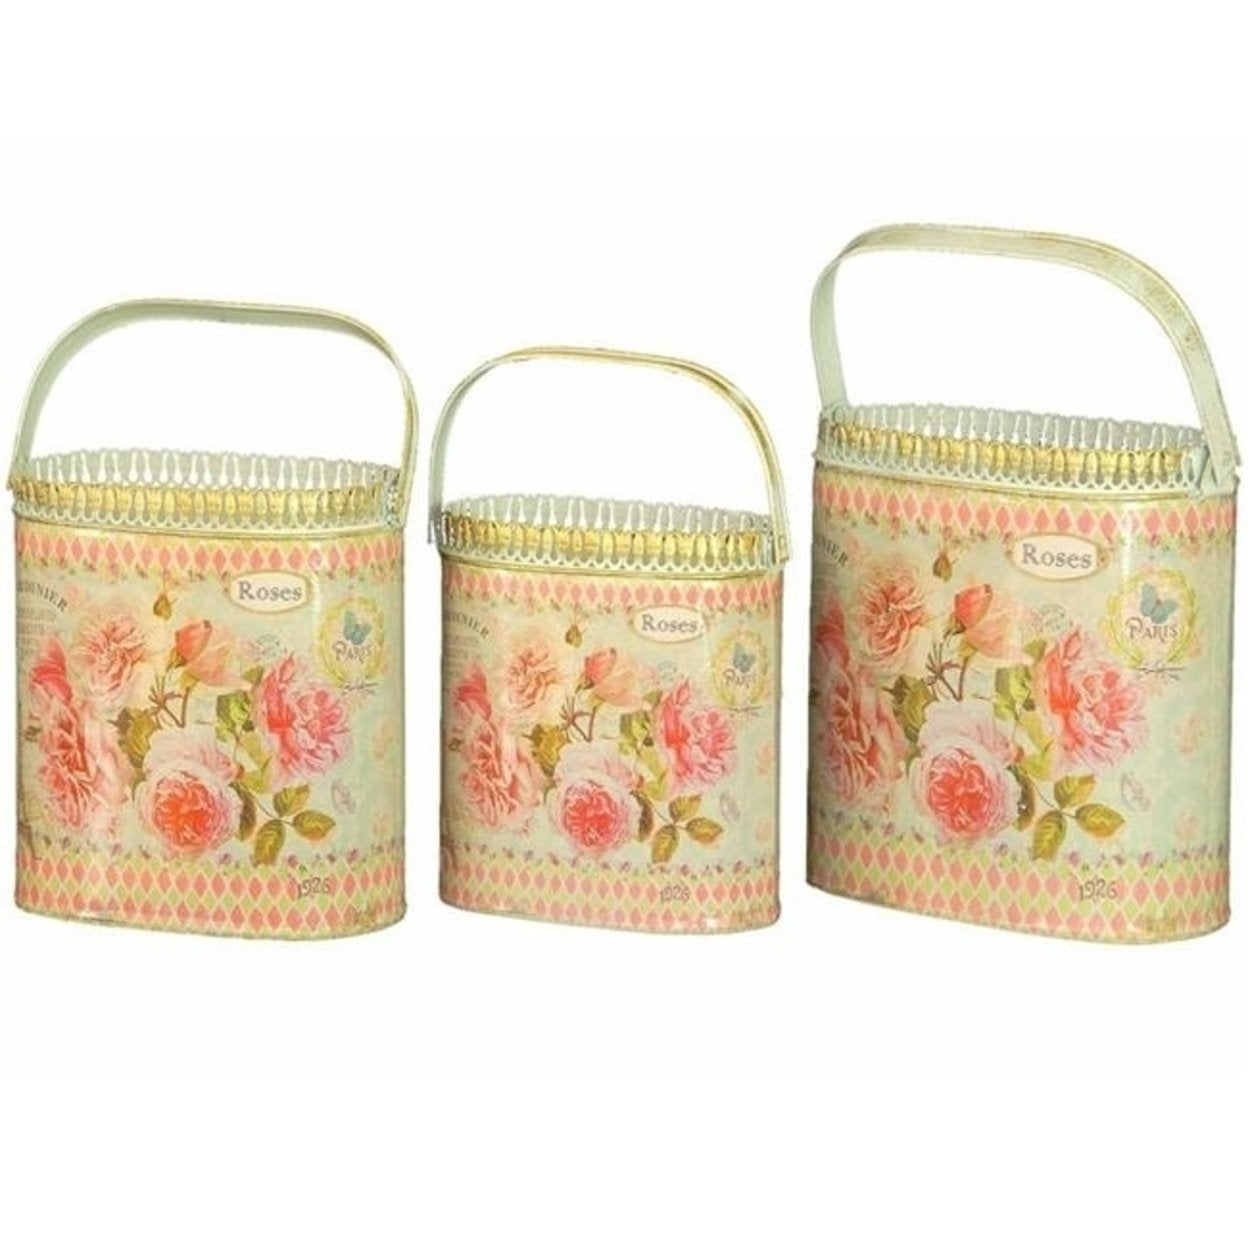 Dolce Mela Dmmv559 S3 French Country Planters Vintage Metal Decorative Containers Flower Pots Set Of 3